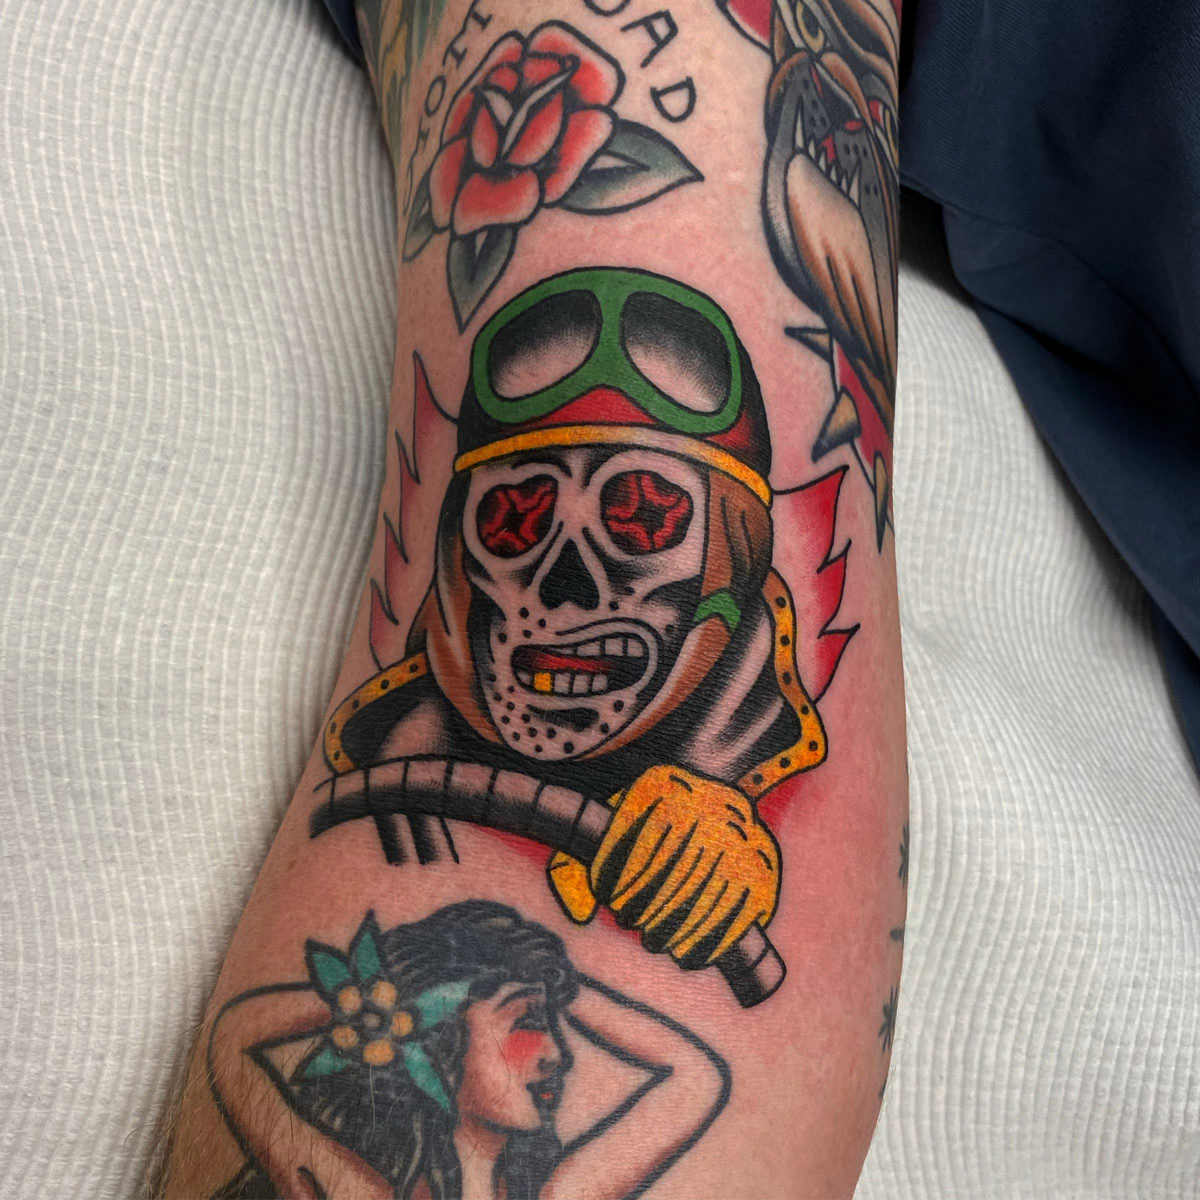 american traditional skeleton pirate tattoo done in colour on the arm